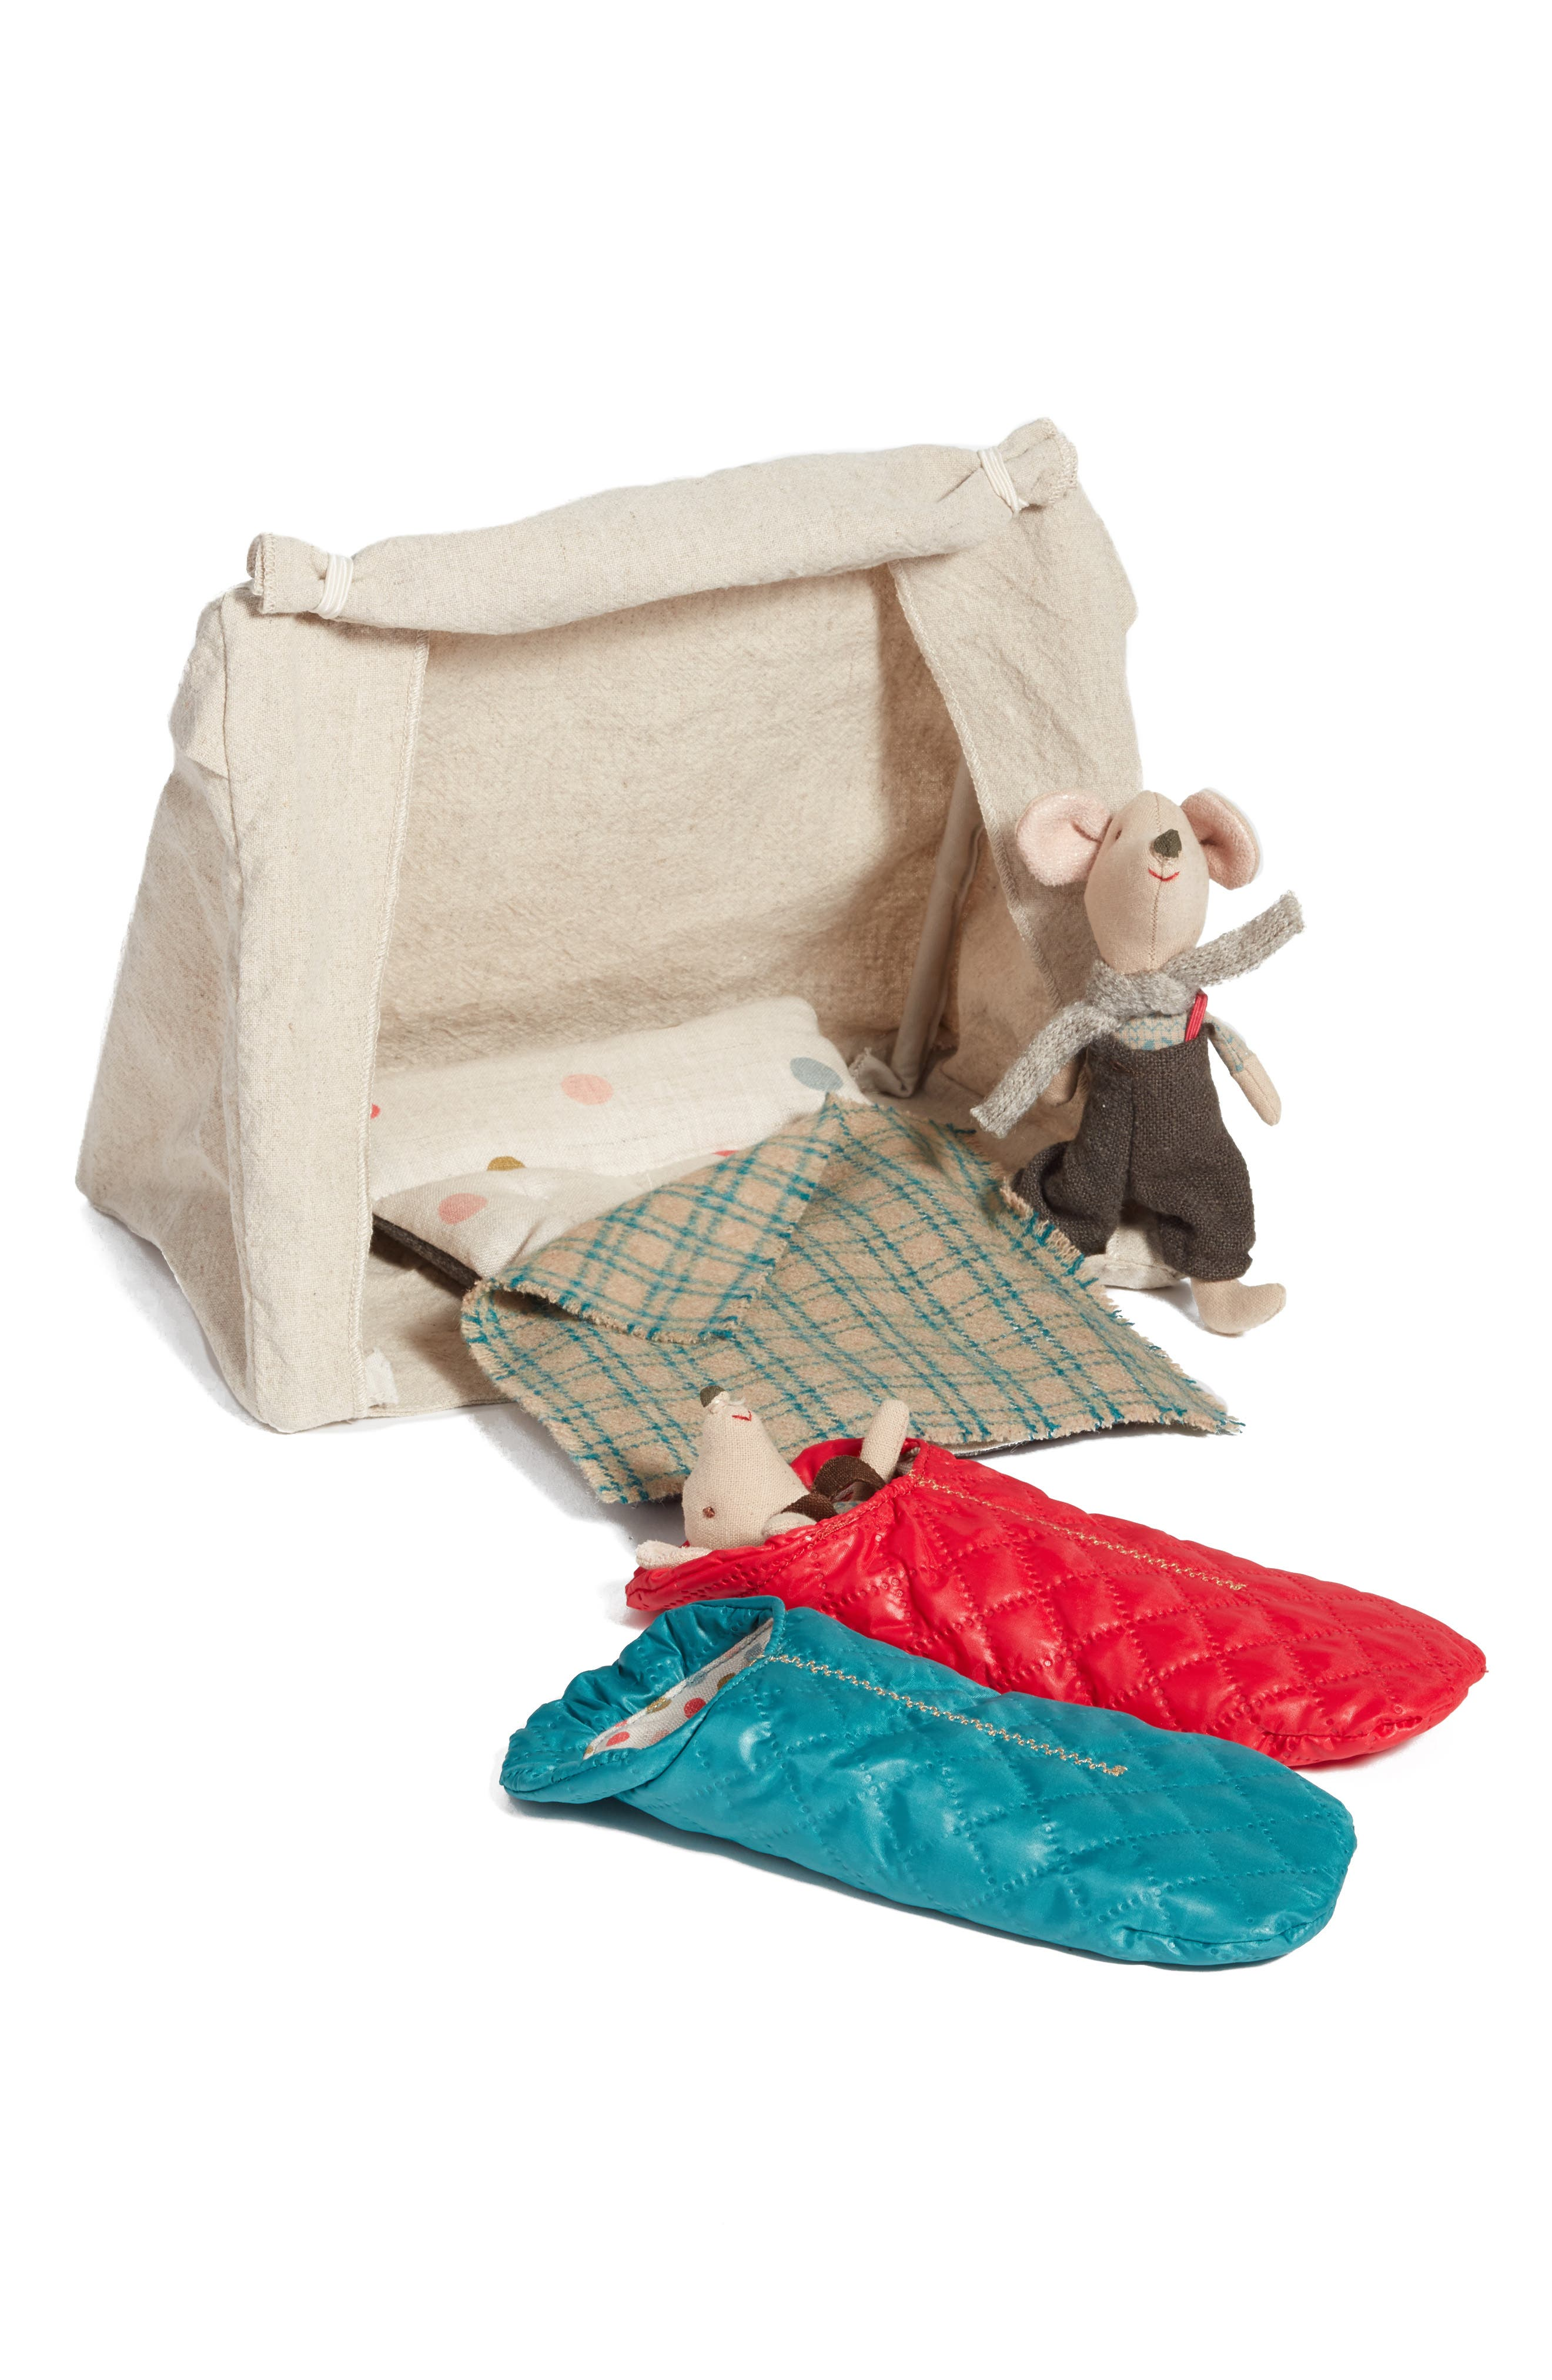 Alternate Image 1 Selected - Maileg Mouse Tent 5-Piece Play Set